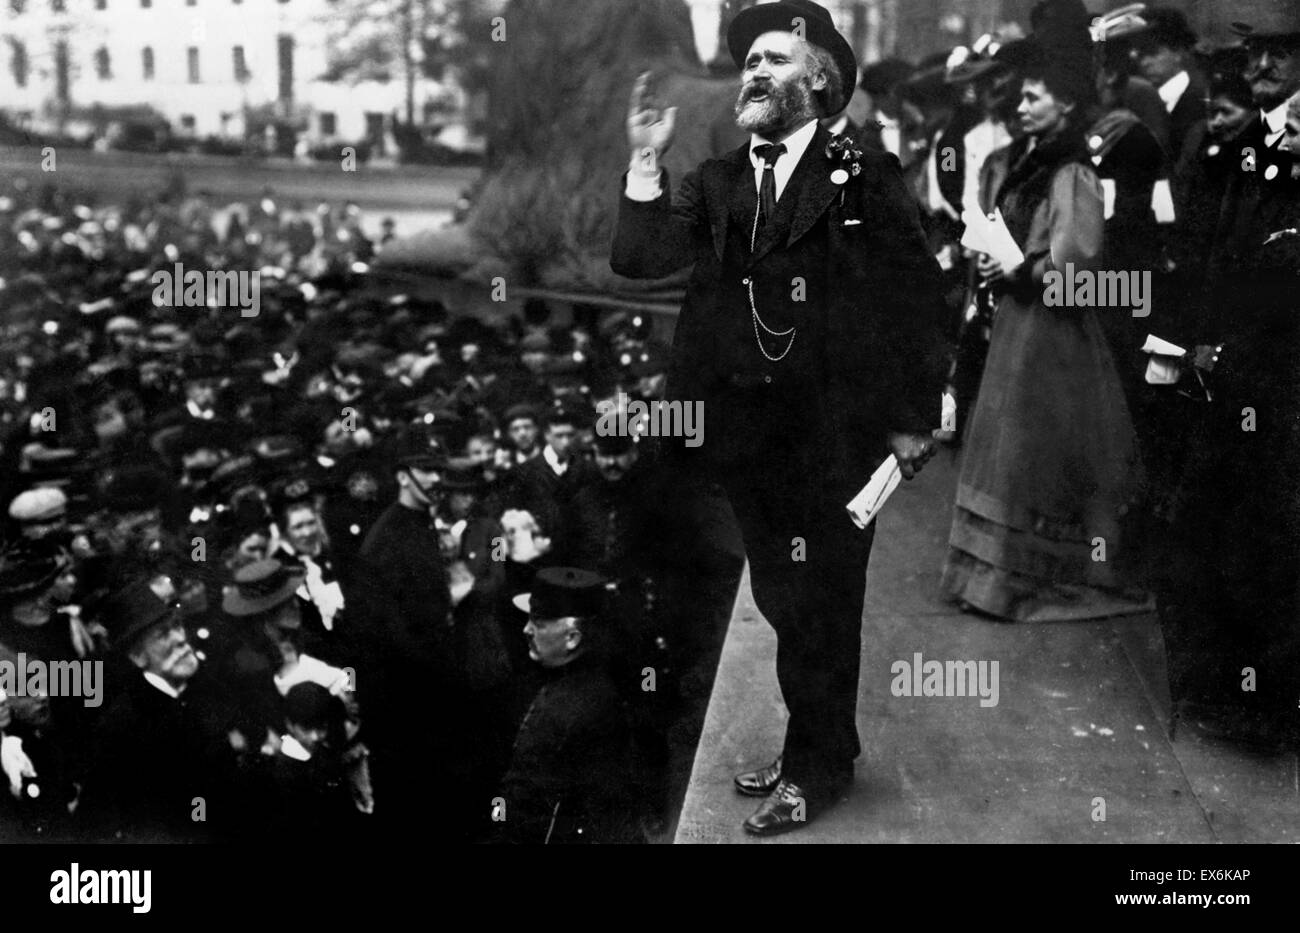 Keir Hardie at Trafalgar Square London 1908 - Stock Image